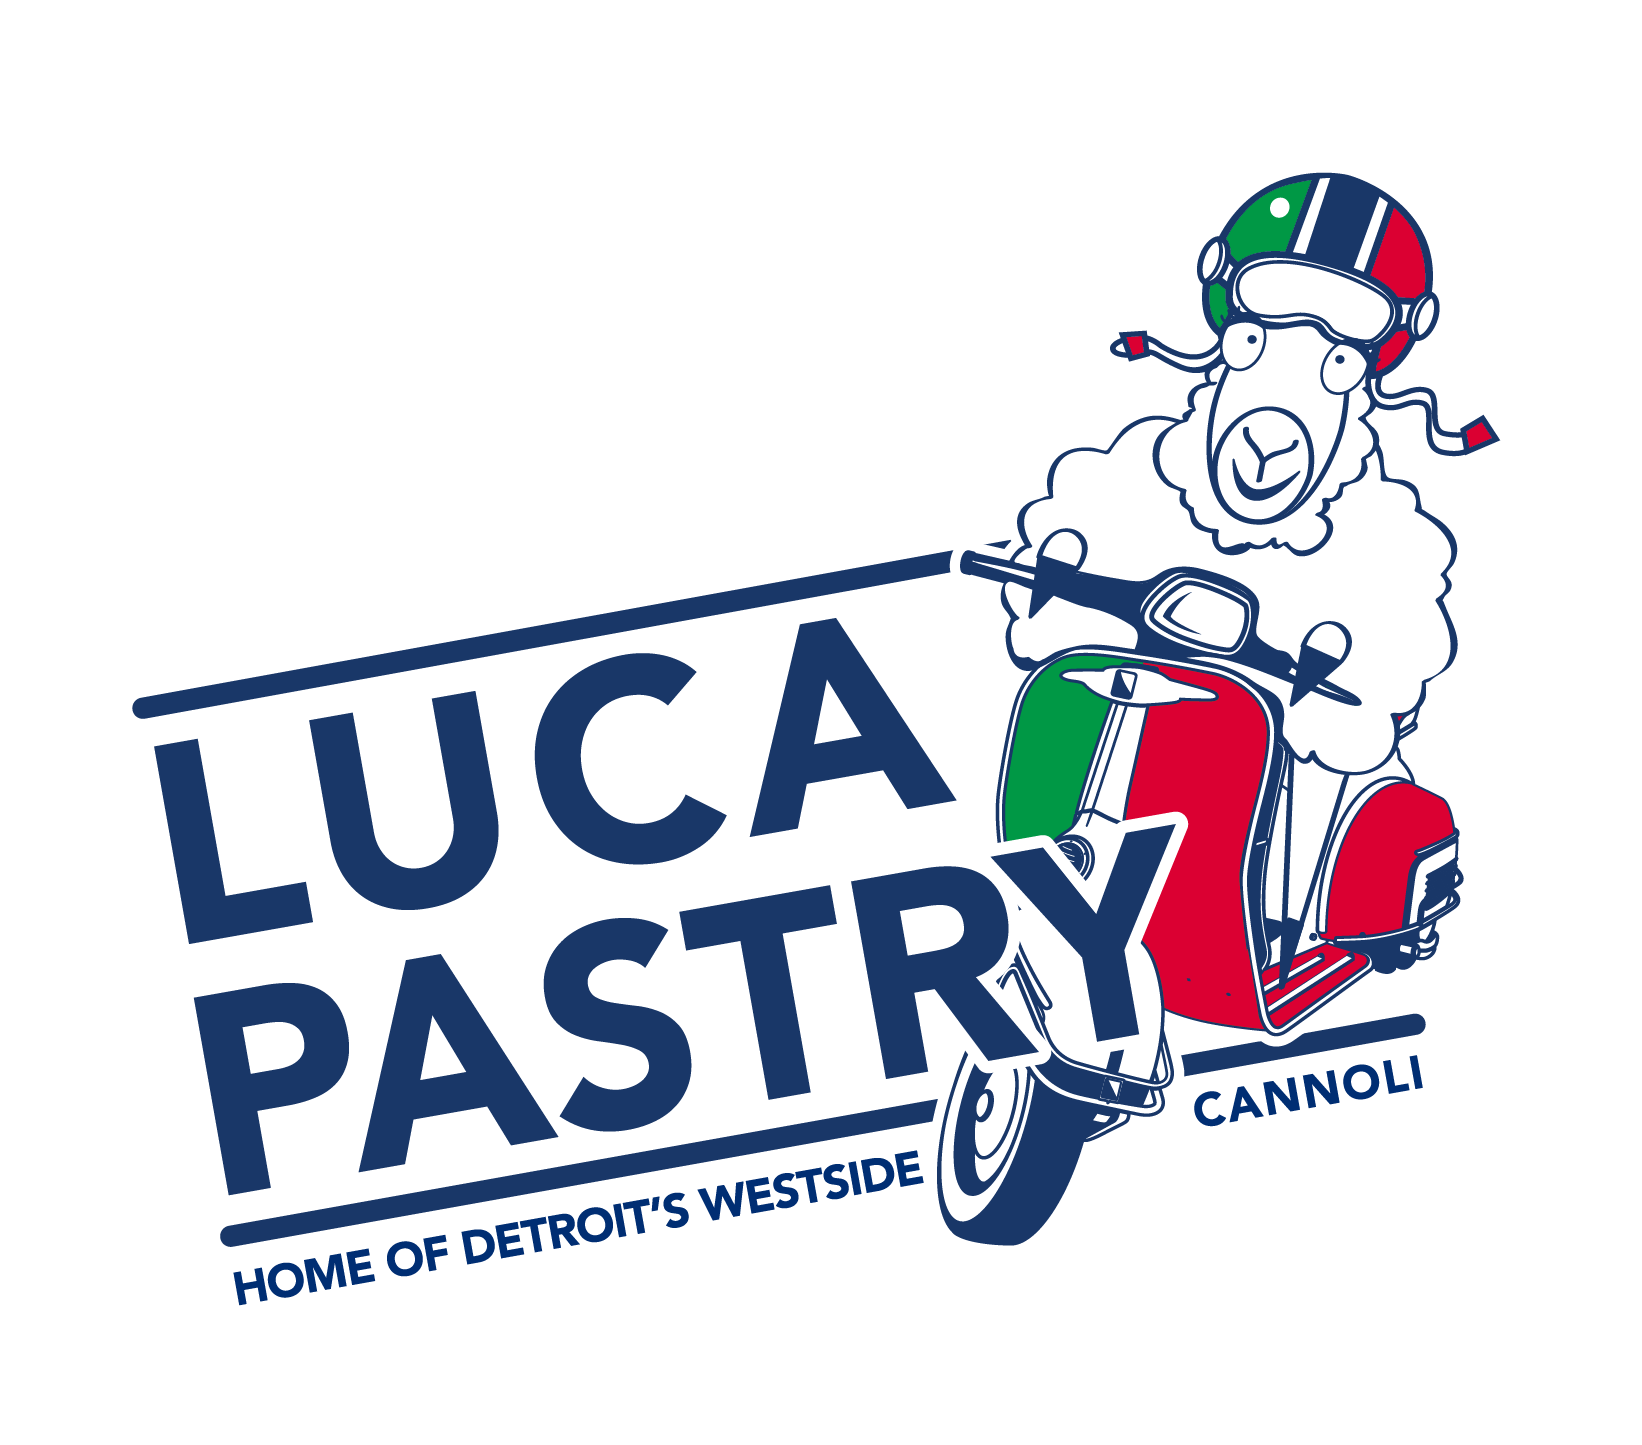 Luca Pastry